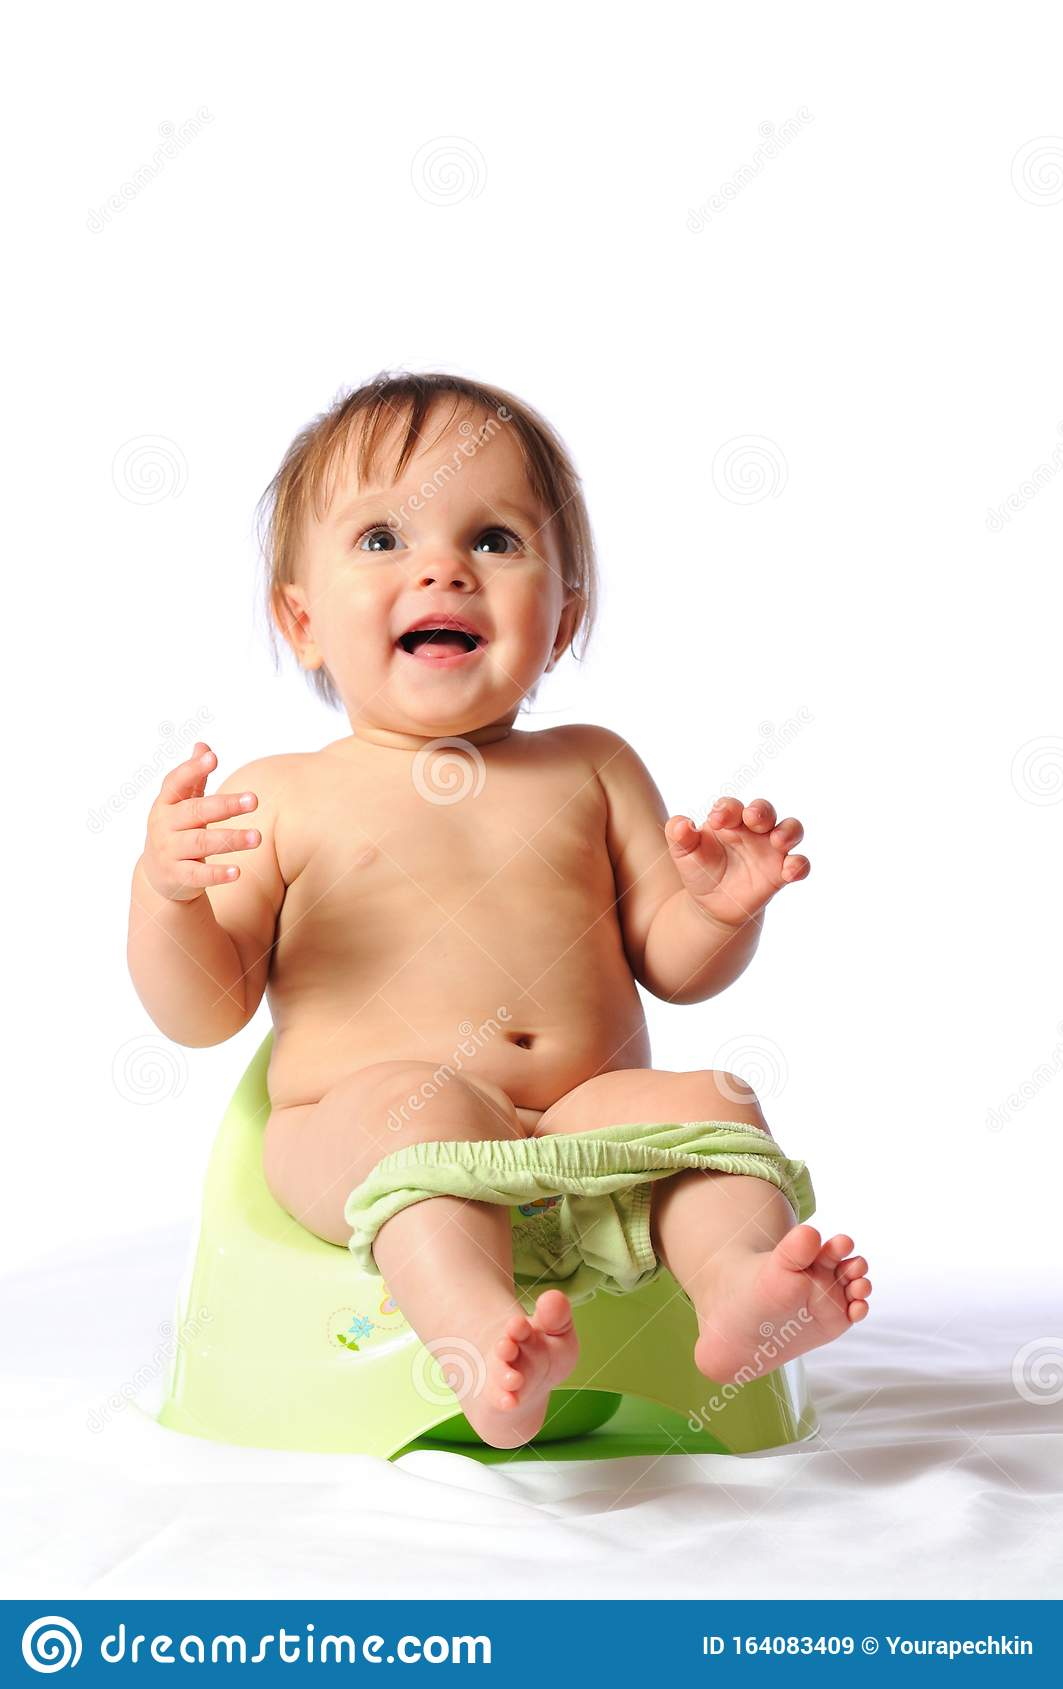 Funny Baby Sitting On Green Potty Stock Image Image Of Baby Cute 164083409